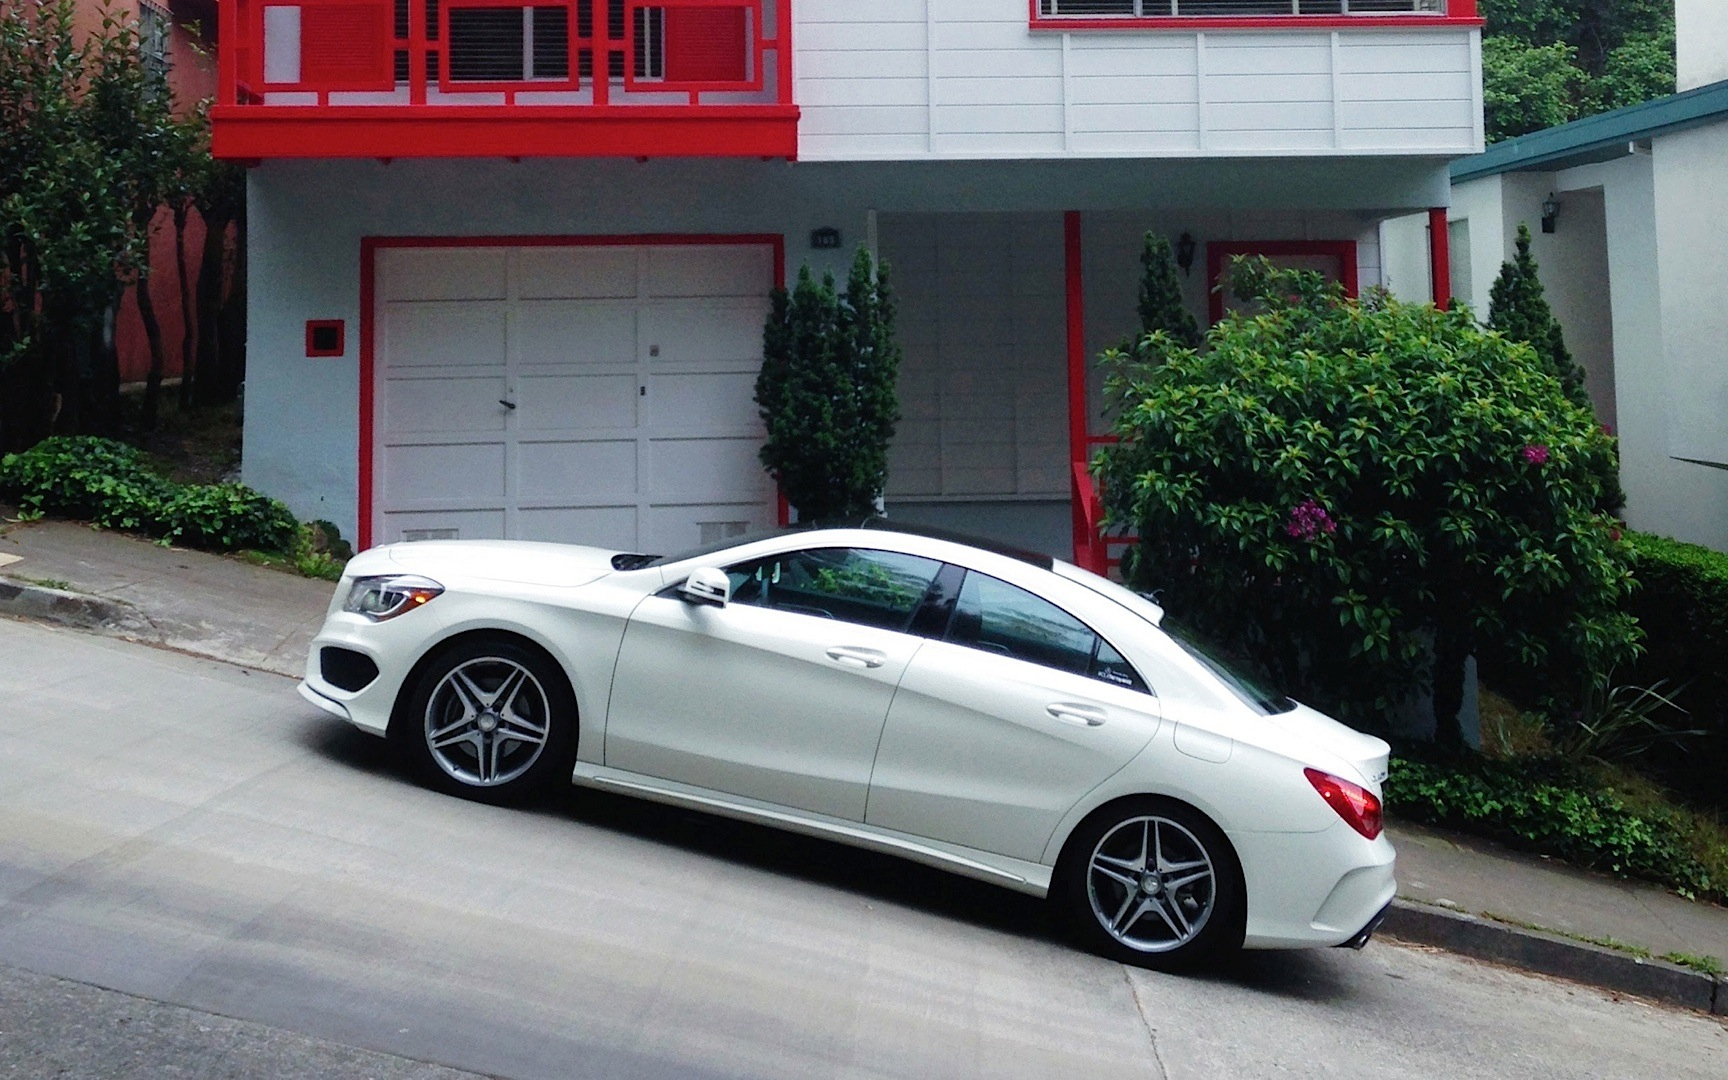 mercedes-benz cla gets reviewedauto guide - autoevolution